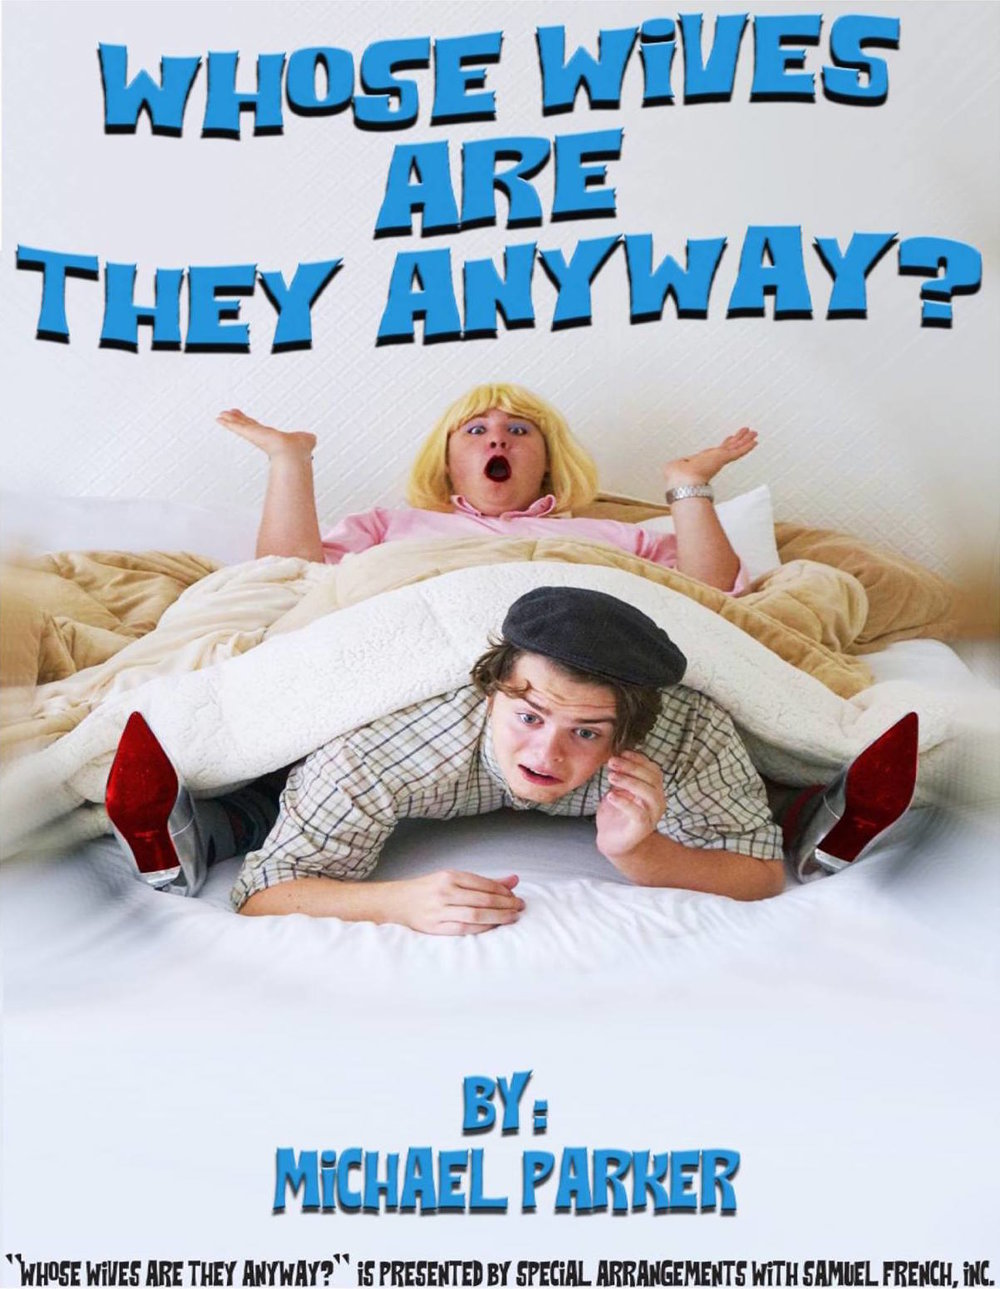 Whose Wives Are They Anyway? - KING'S COLLEGE THEATRE, WILKES-BARRE, PAPLAywright: Michael E. ParkerDIRECTER: SHEILEEN GODWINSCENIC Designer:Steph BurkeLIGHTING DESIGNER:Dave rEYNOLDSCOSTUME DESIGNER: AUTUMN J. GALKA